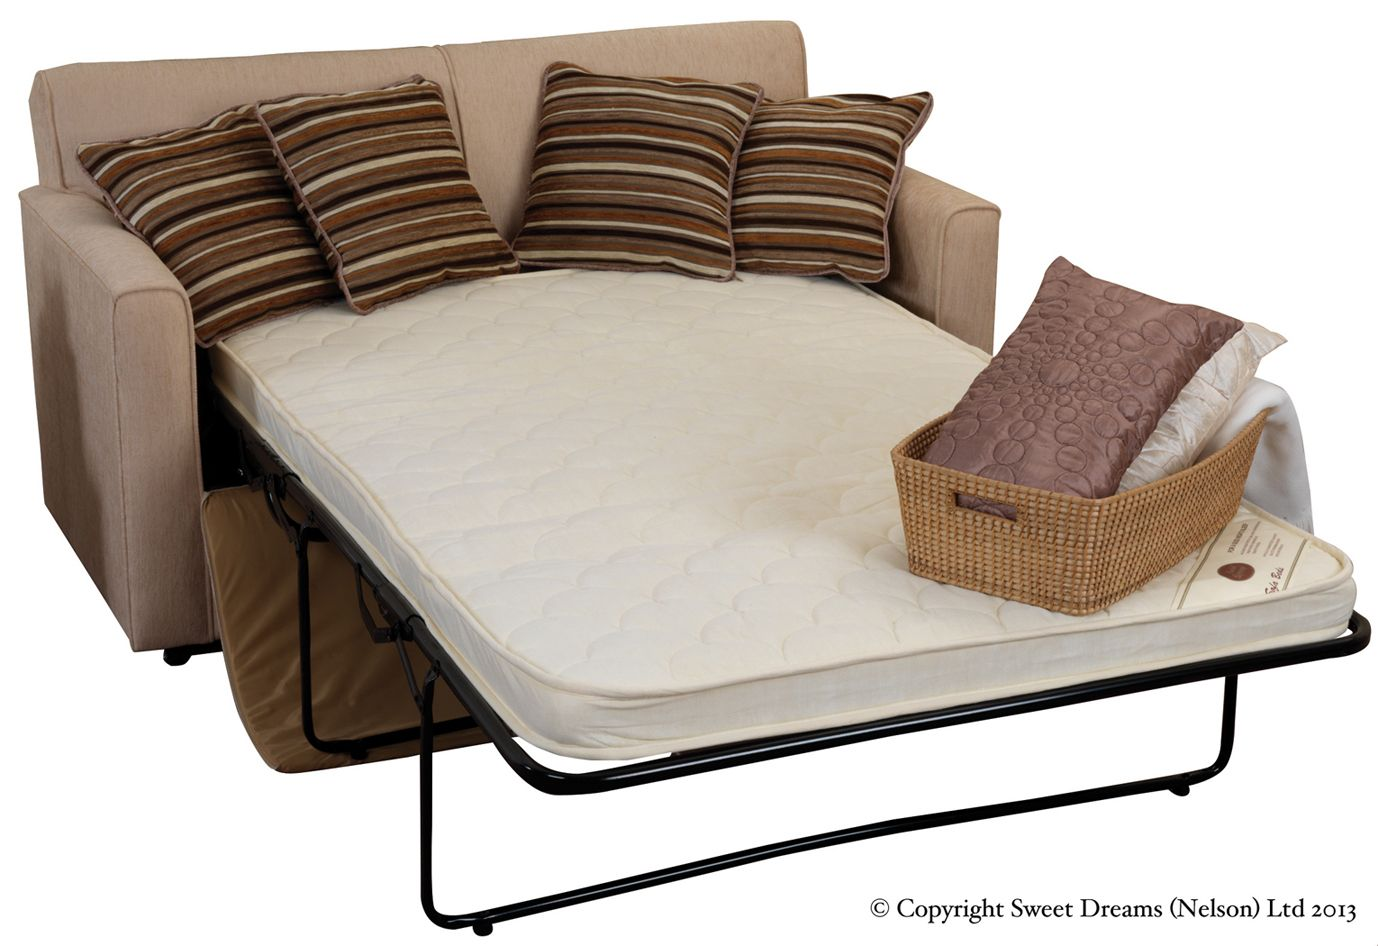 Ideas of 2 seater sofa bed kentucky 2 seater sofabed ohhpvuo